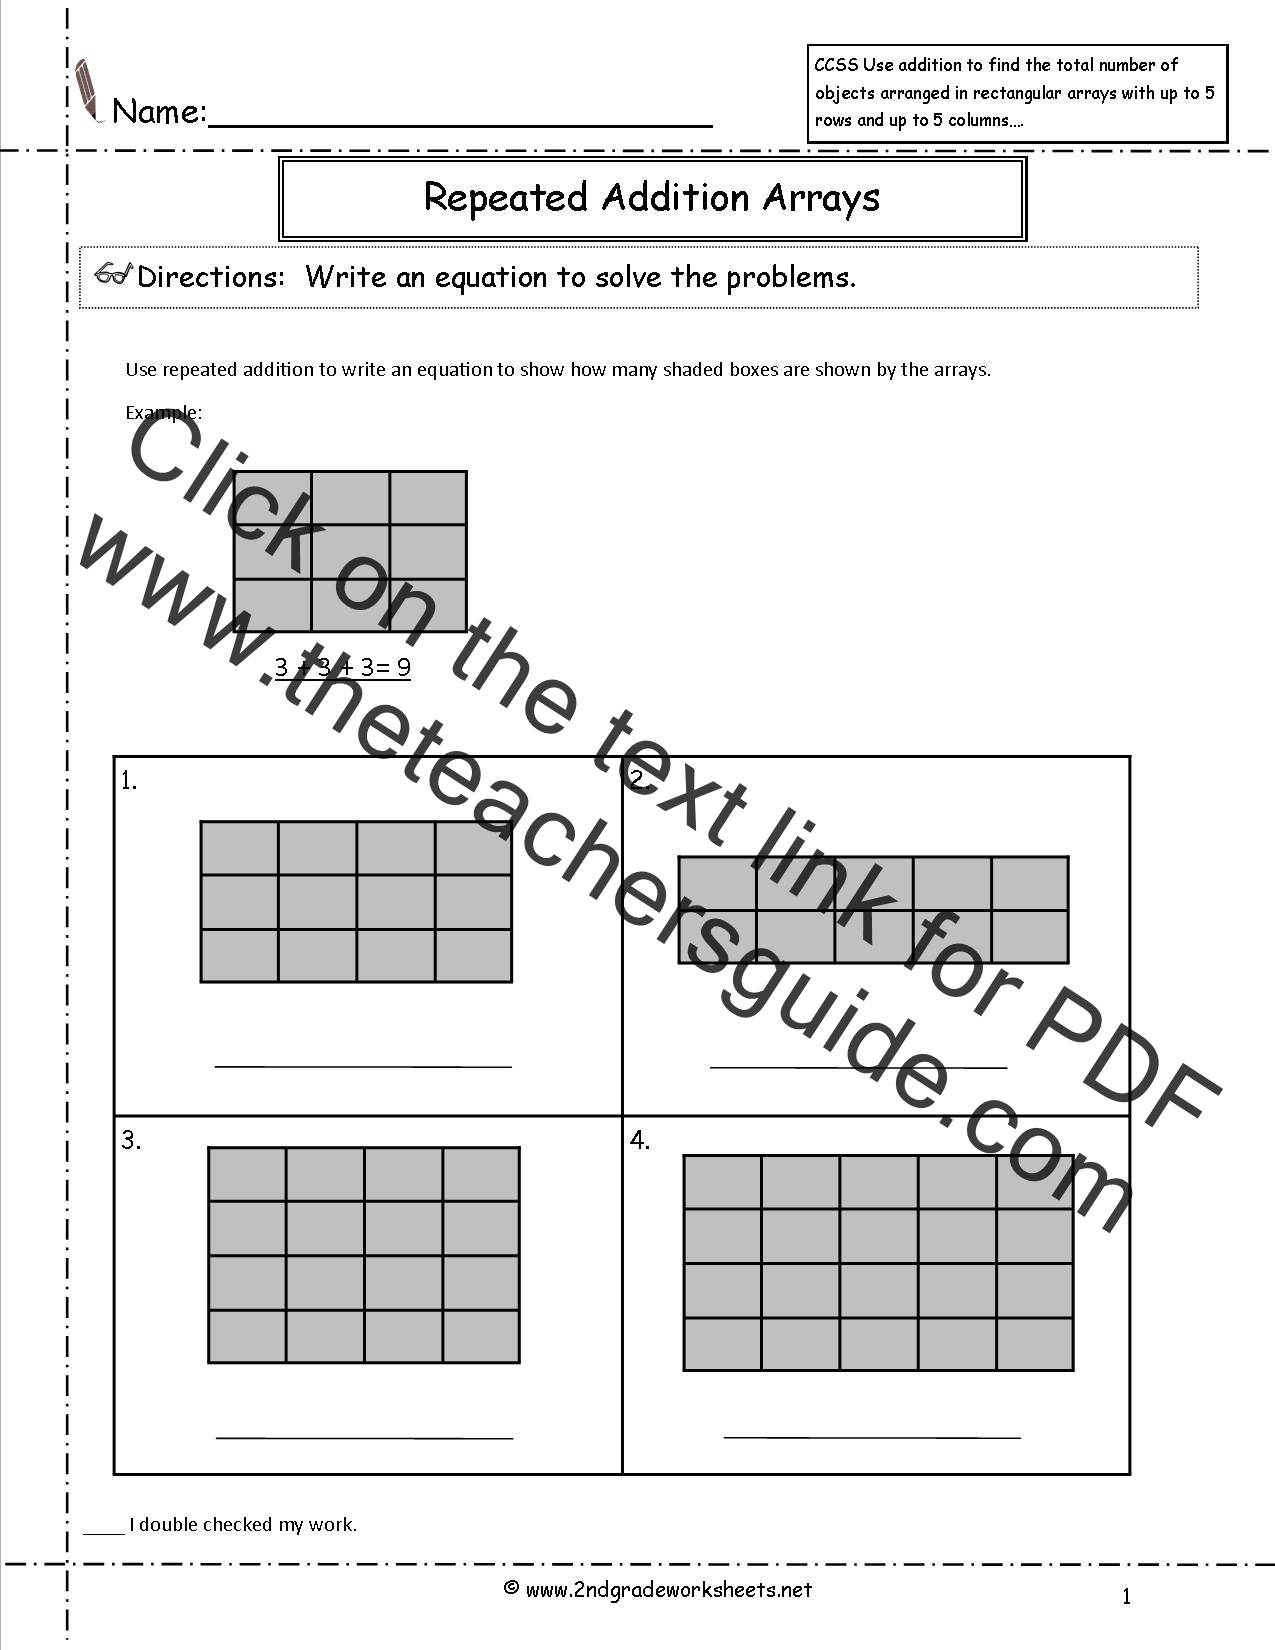 Worksheets Equation Building Worksheets ccss 2 oa 4 worksheets repeated addition arrays worksheet